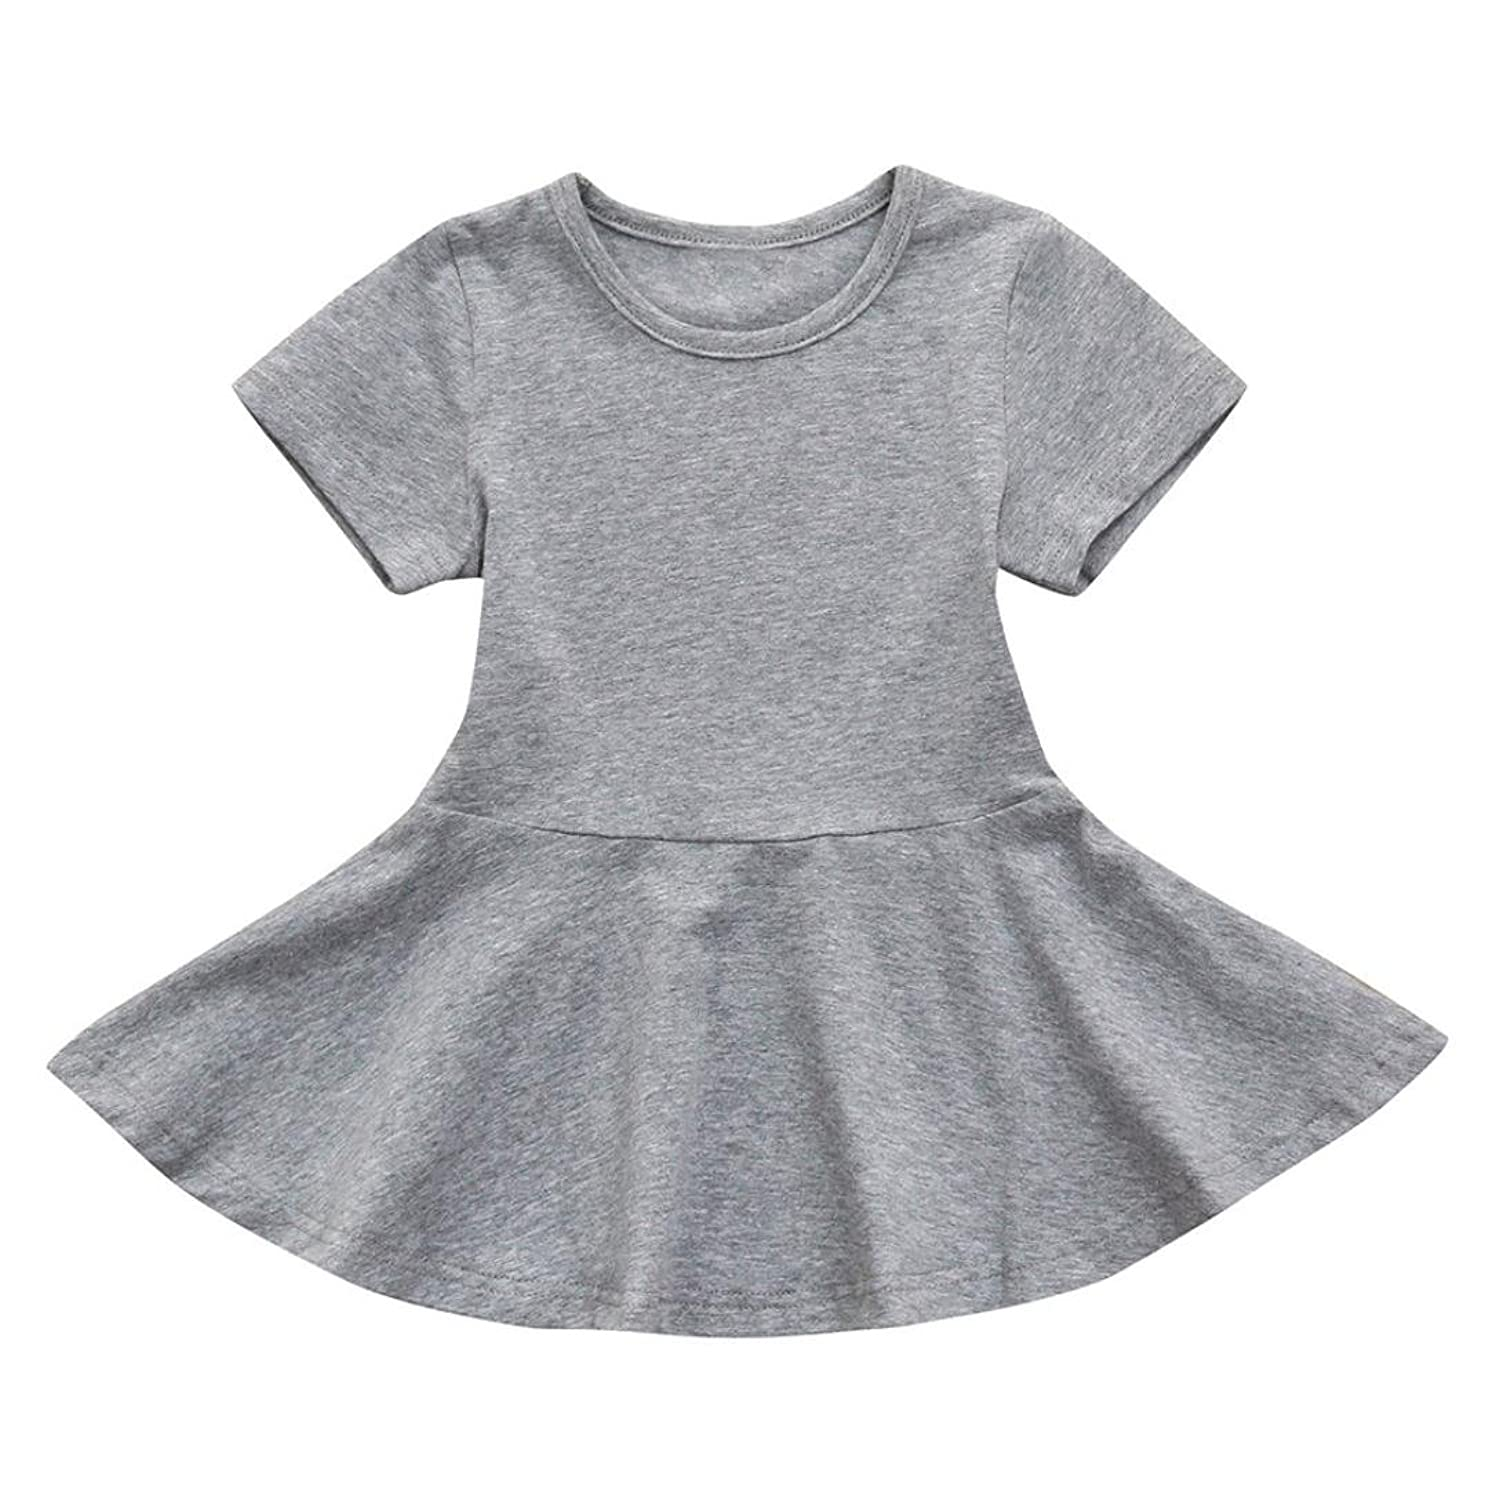 f25b503299bc ❤Material:Cotton blend❤1PC Candy Color Short Sleeve Sundress Dresses ❤ ❤NEW  HOT! ❤belle dress for toddler girls dress for toddler girls polo dress for  ...